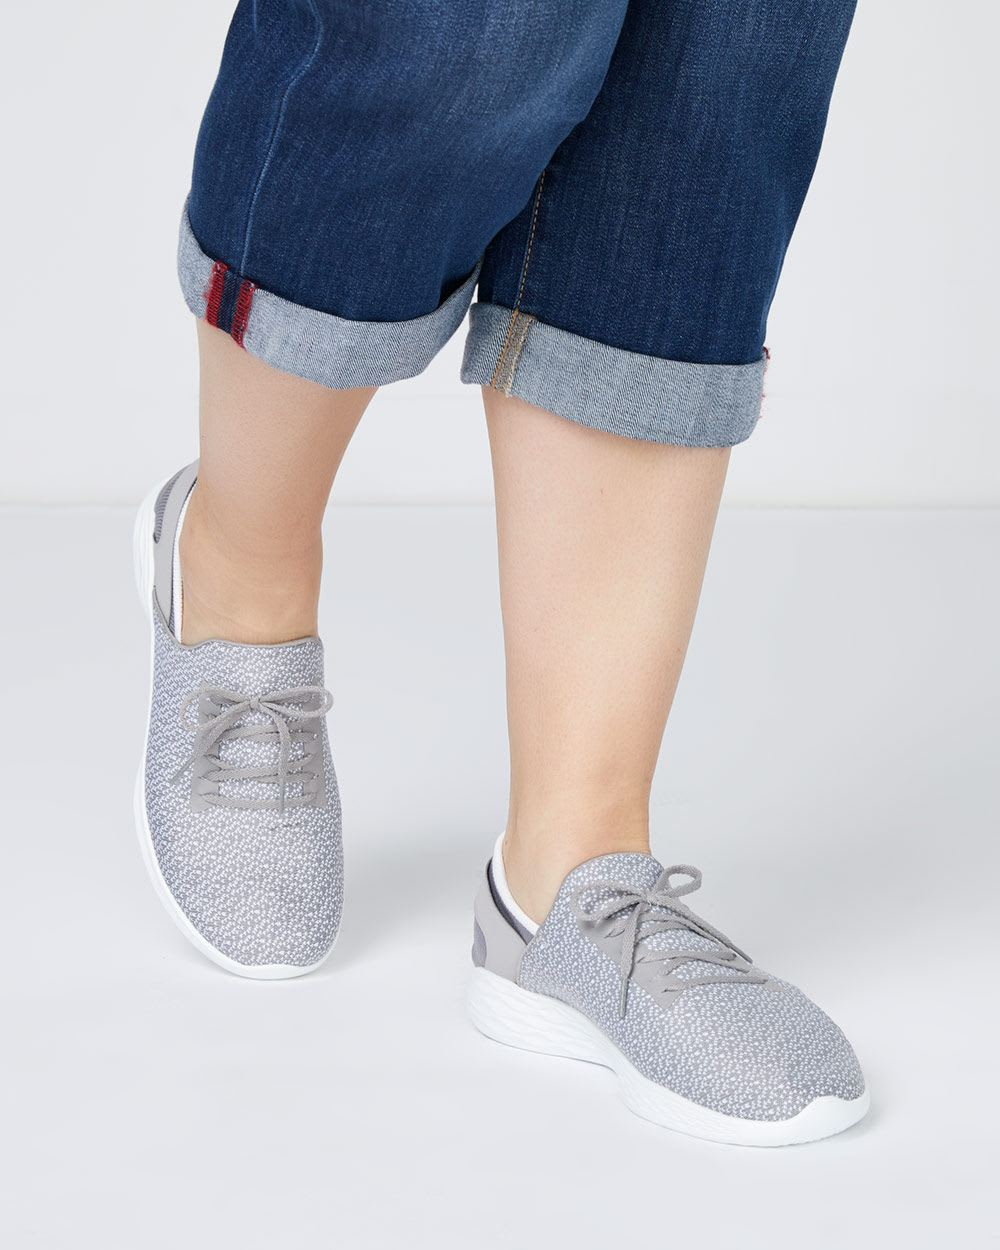 Wide-Width Slip On Shoes with Laces - Skechers